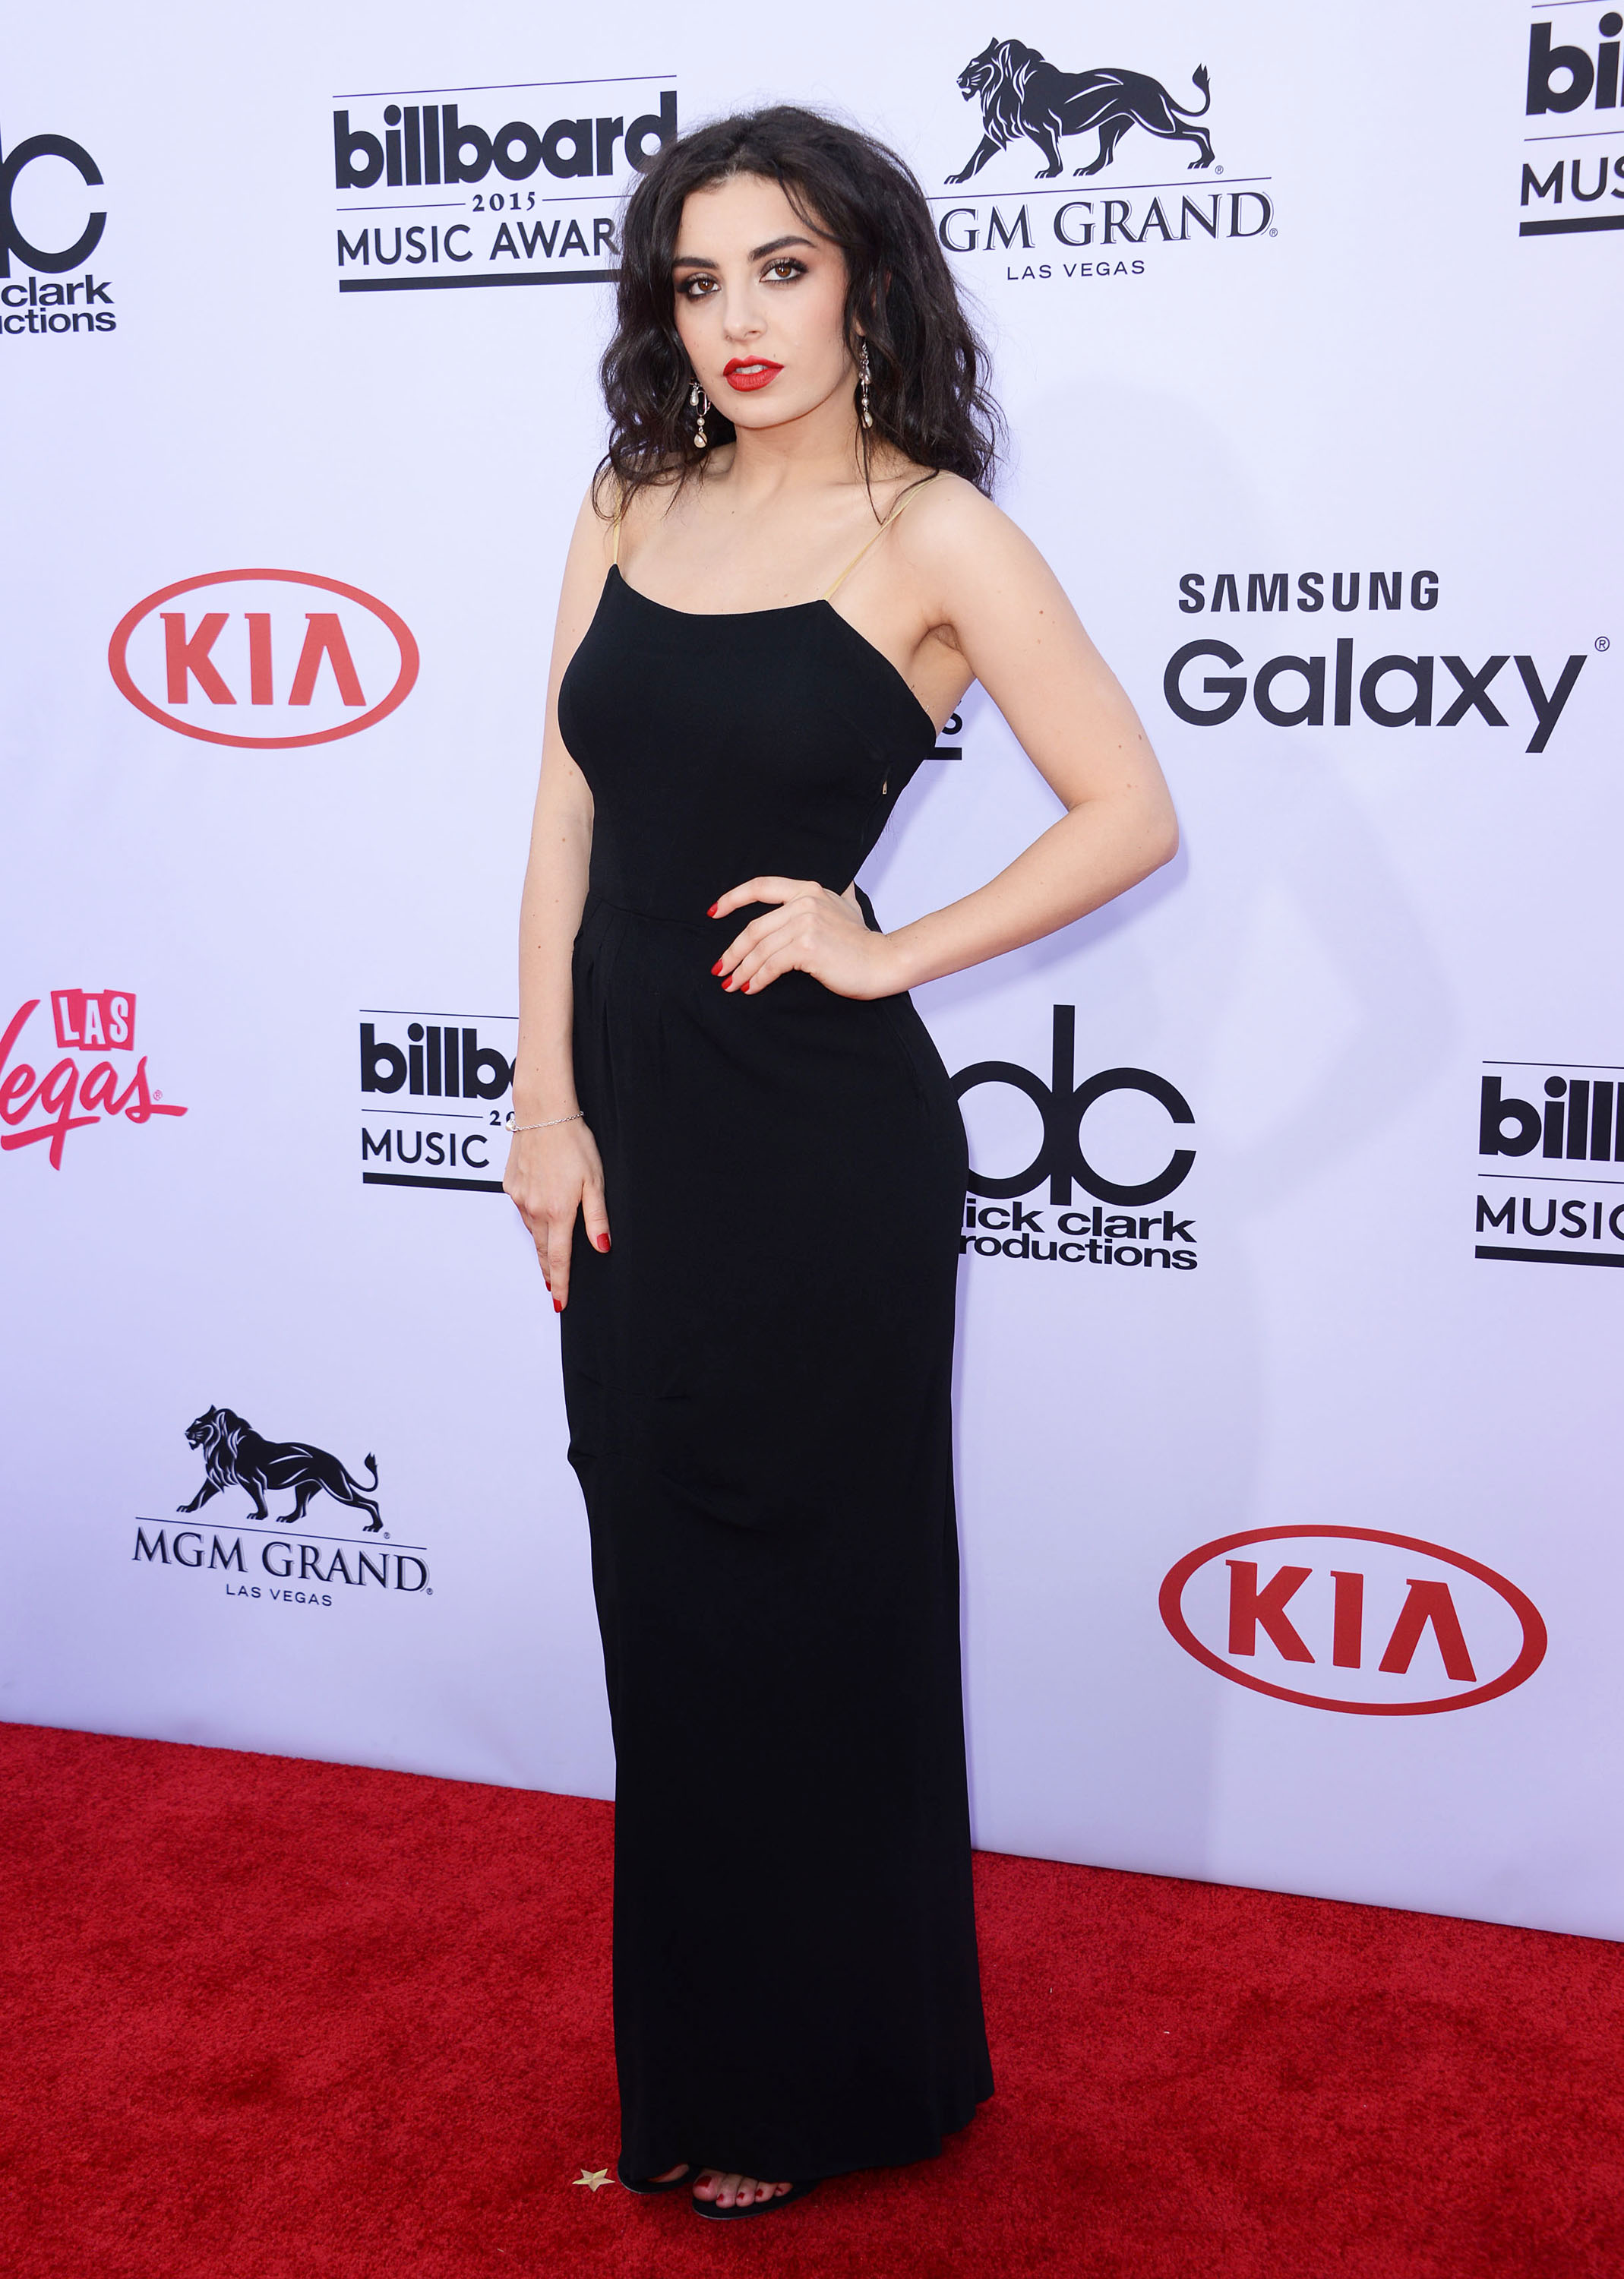 Billboard Music Awards Adequately (and then Poorly) Played: Charli XCX